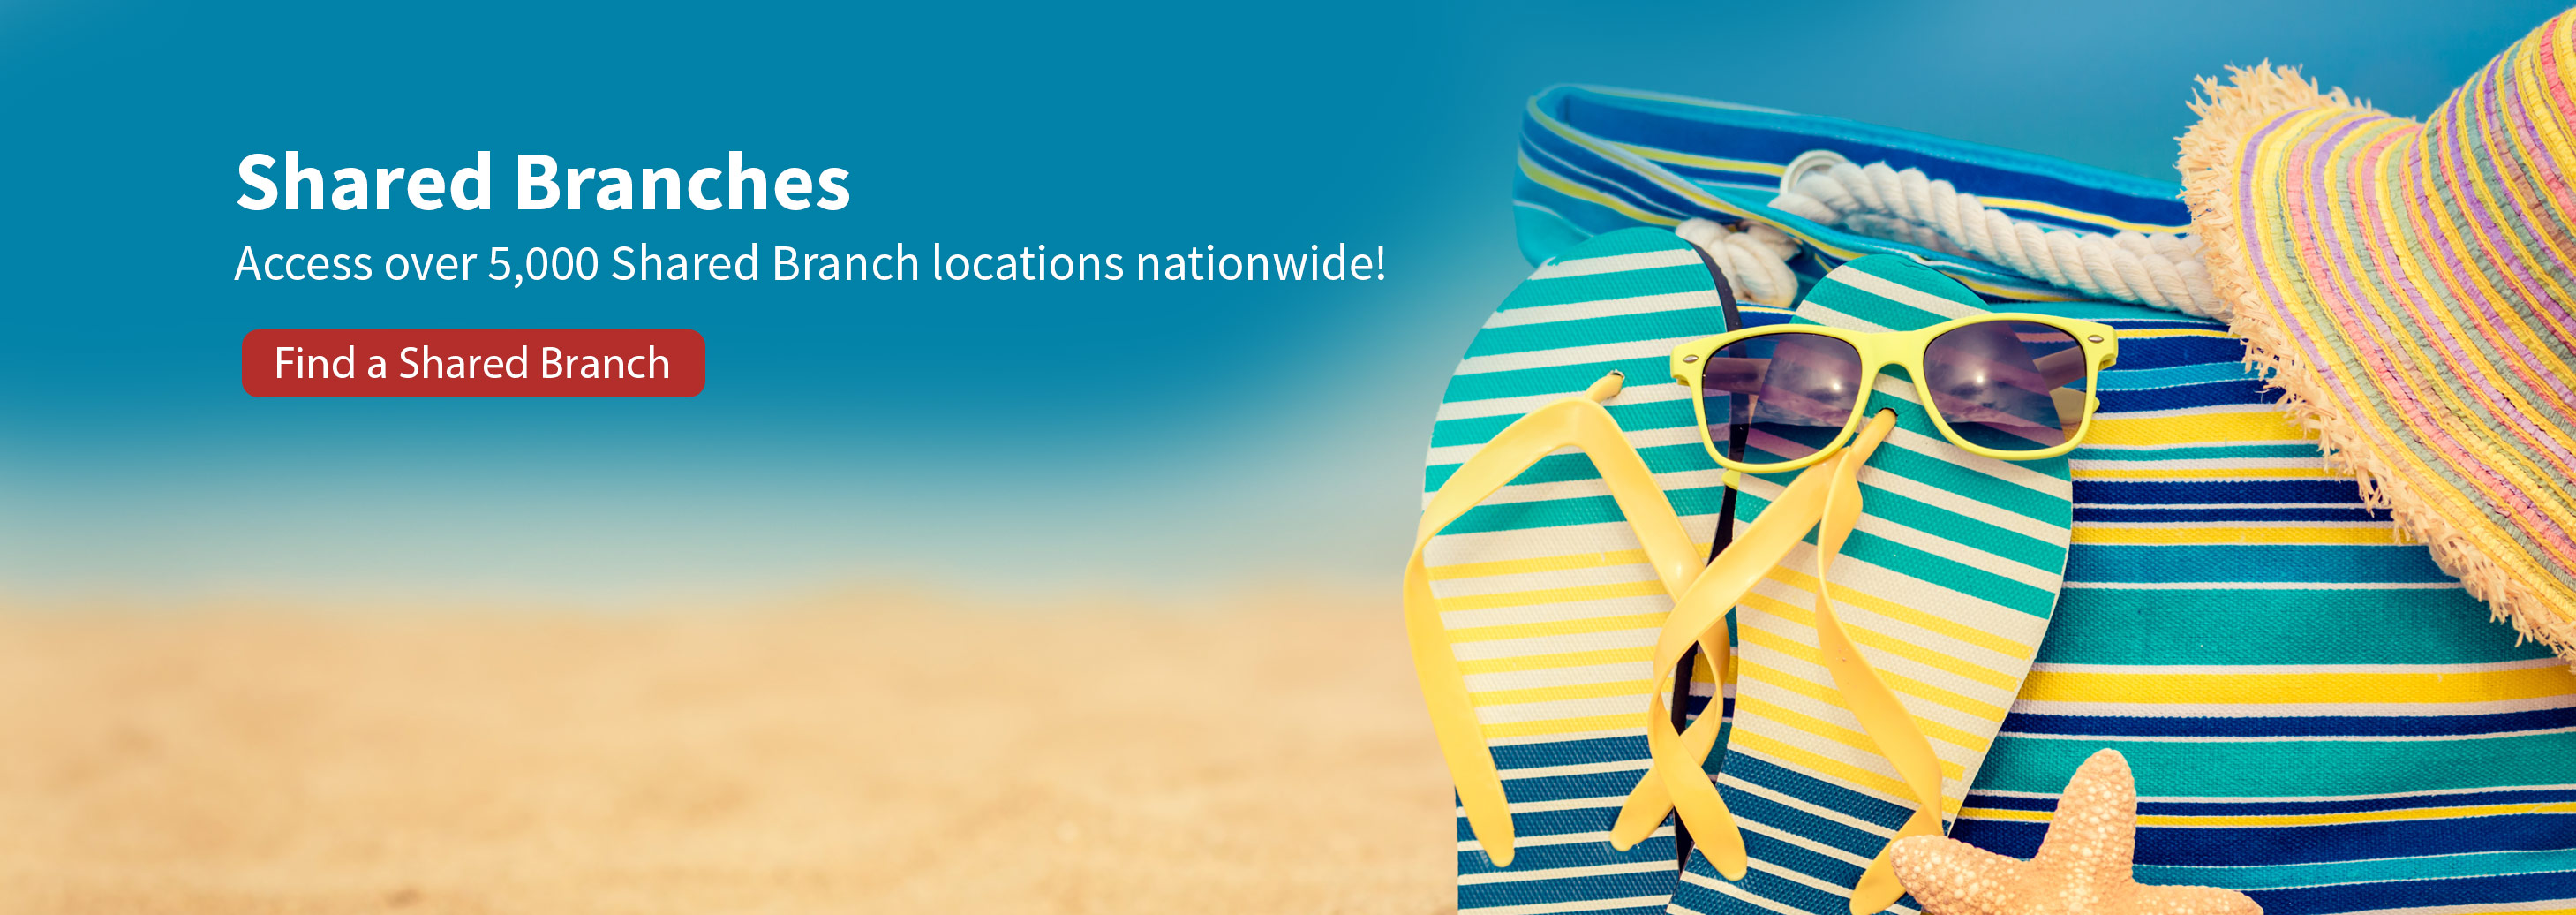 Access over 5,000 shared branch locations nationwide! Find a shared branch